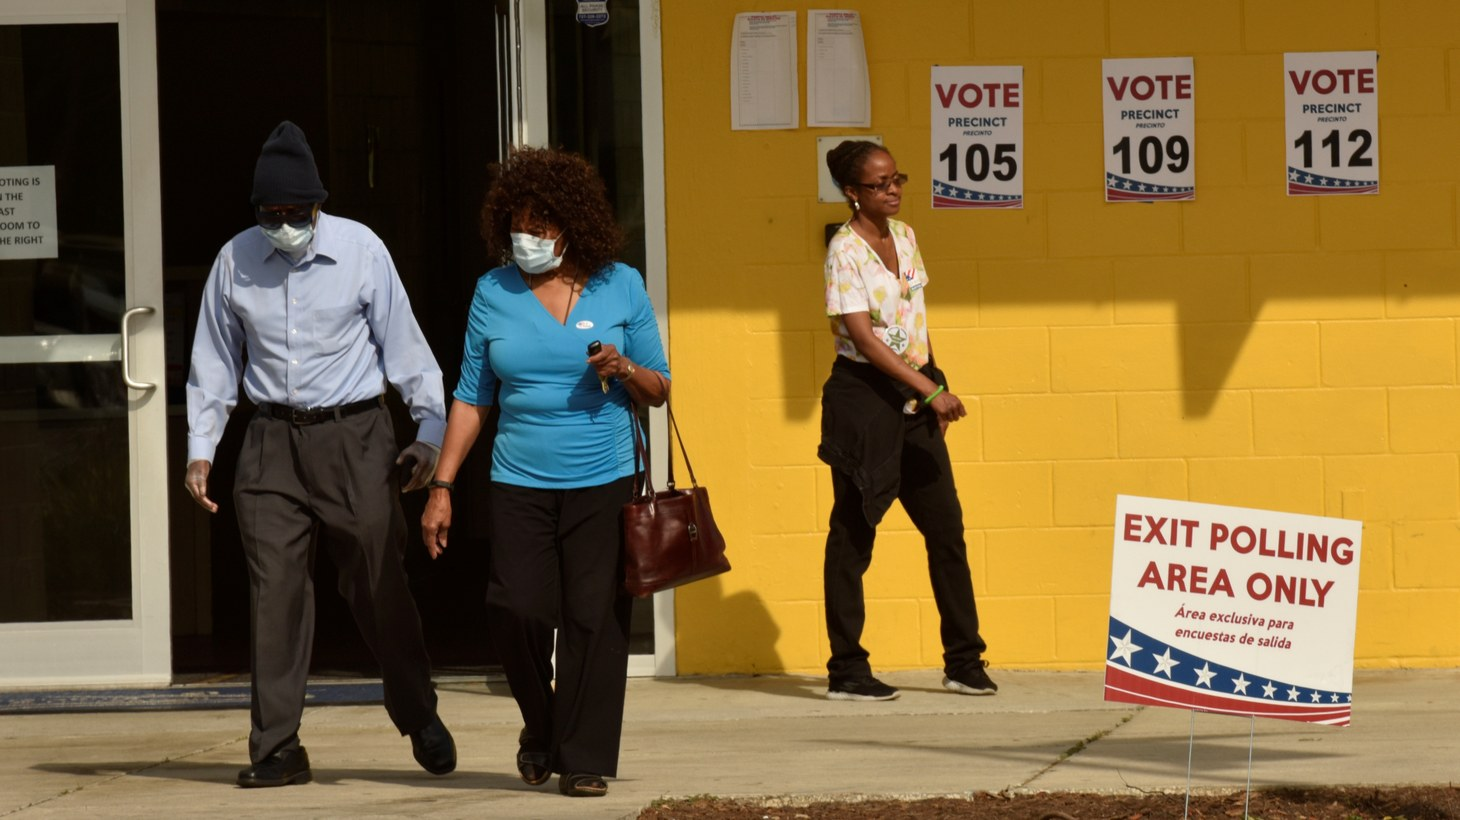 Voters wearing protective masks, due the outbreak of coronavirus disease, walk past election official Brianna Peterson after voting in the municipal and presidential primary elections at their polling center in St. Petersburg, Florida March 17, 2020.